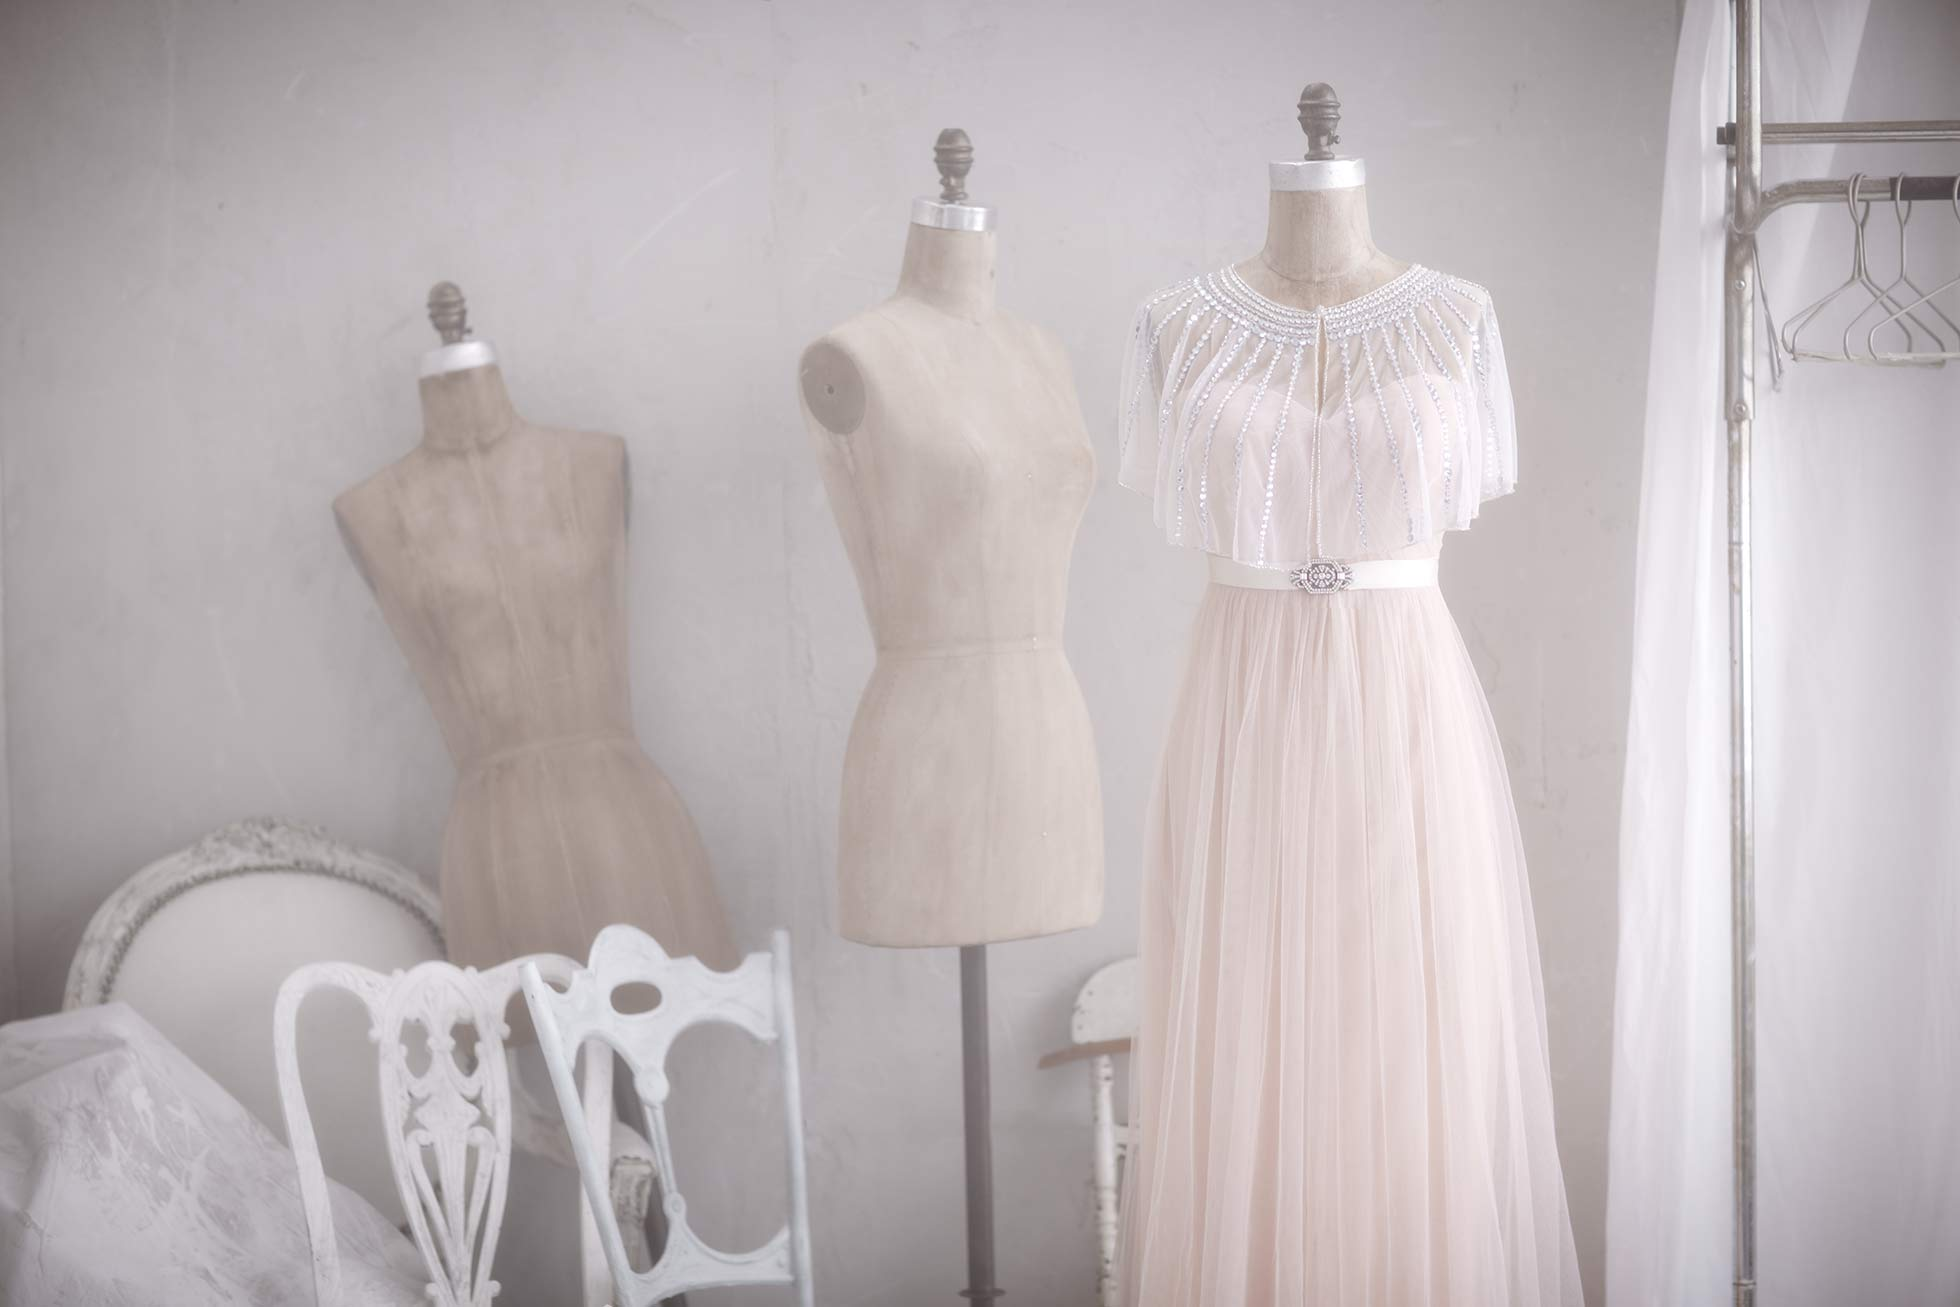 Wedding dresses and dress forms